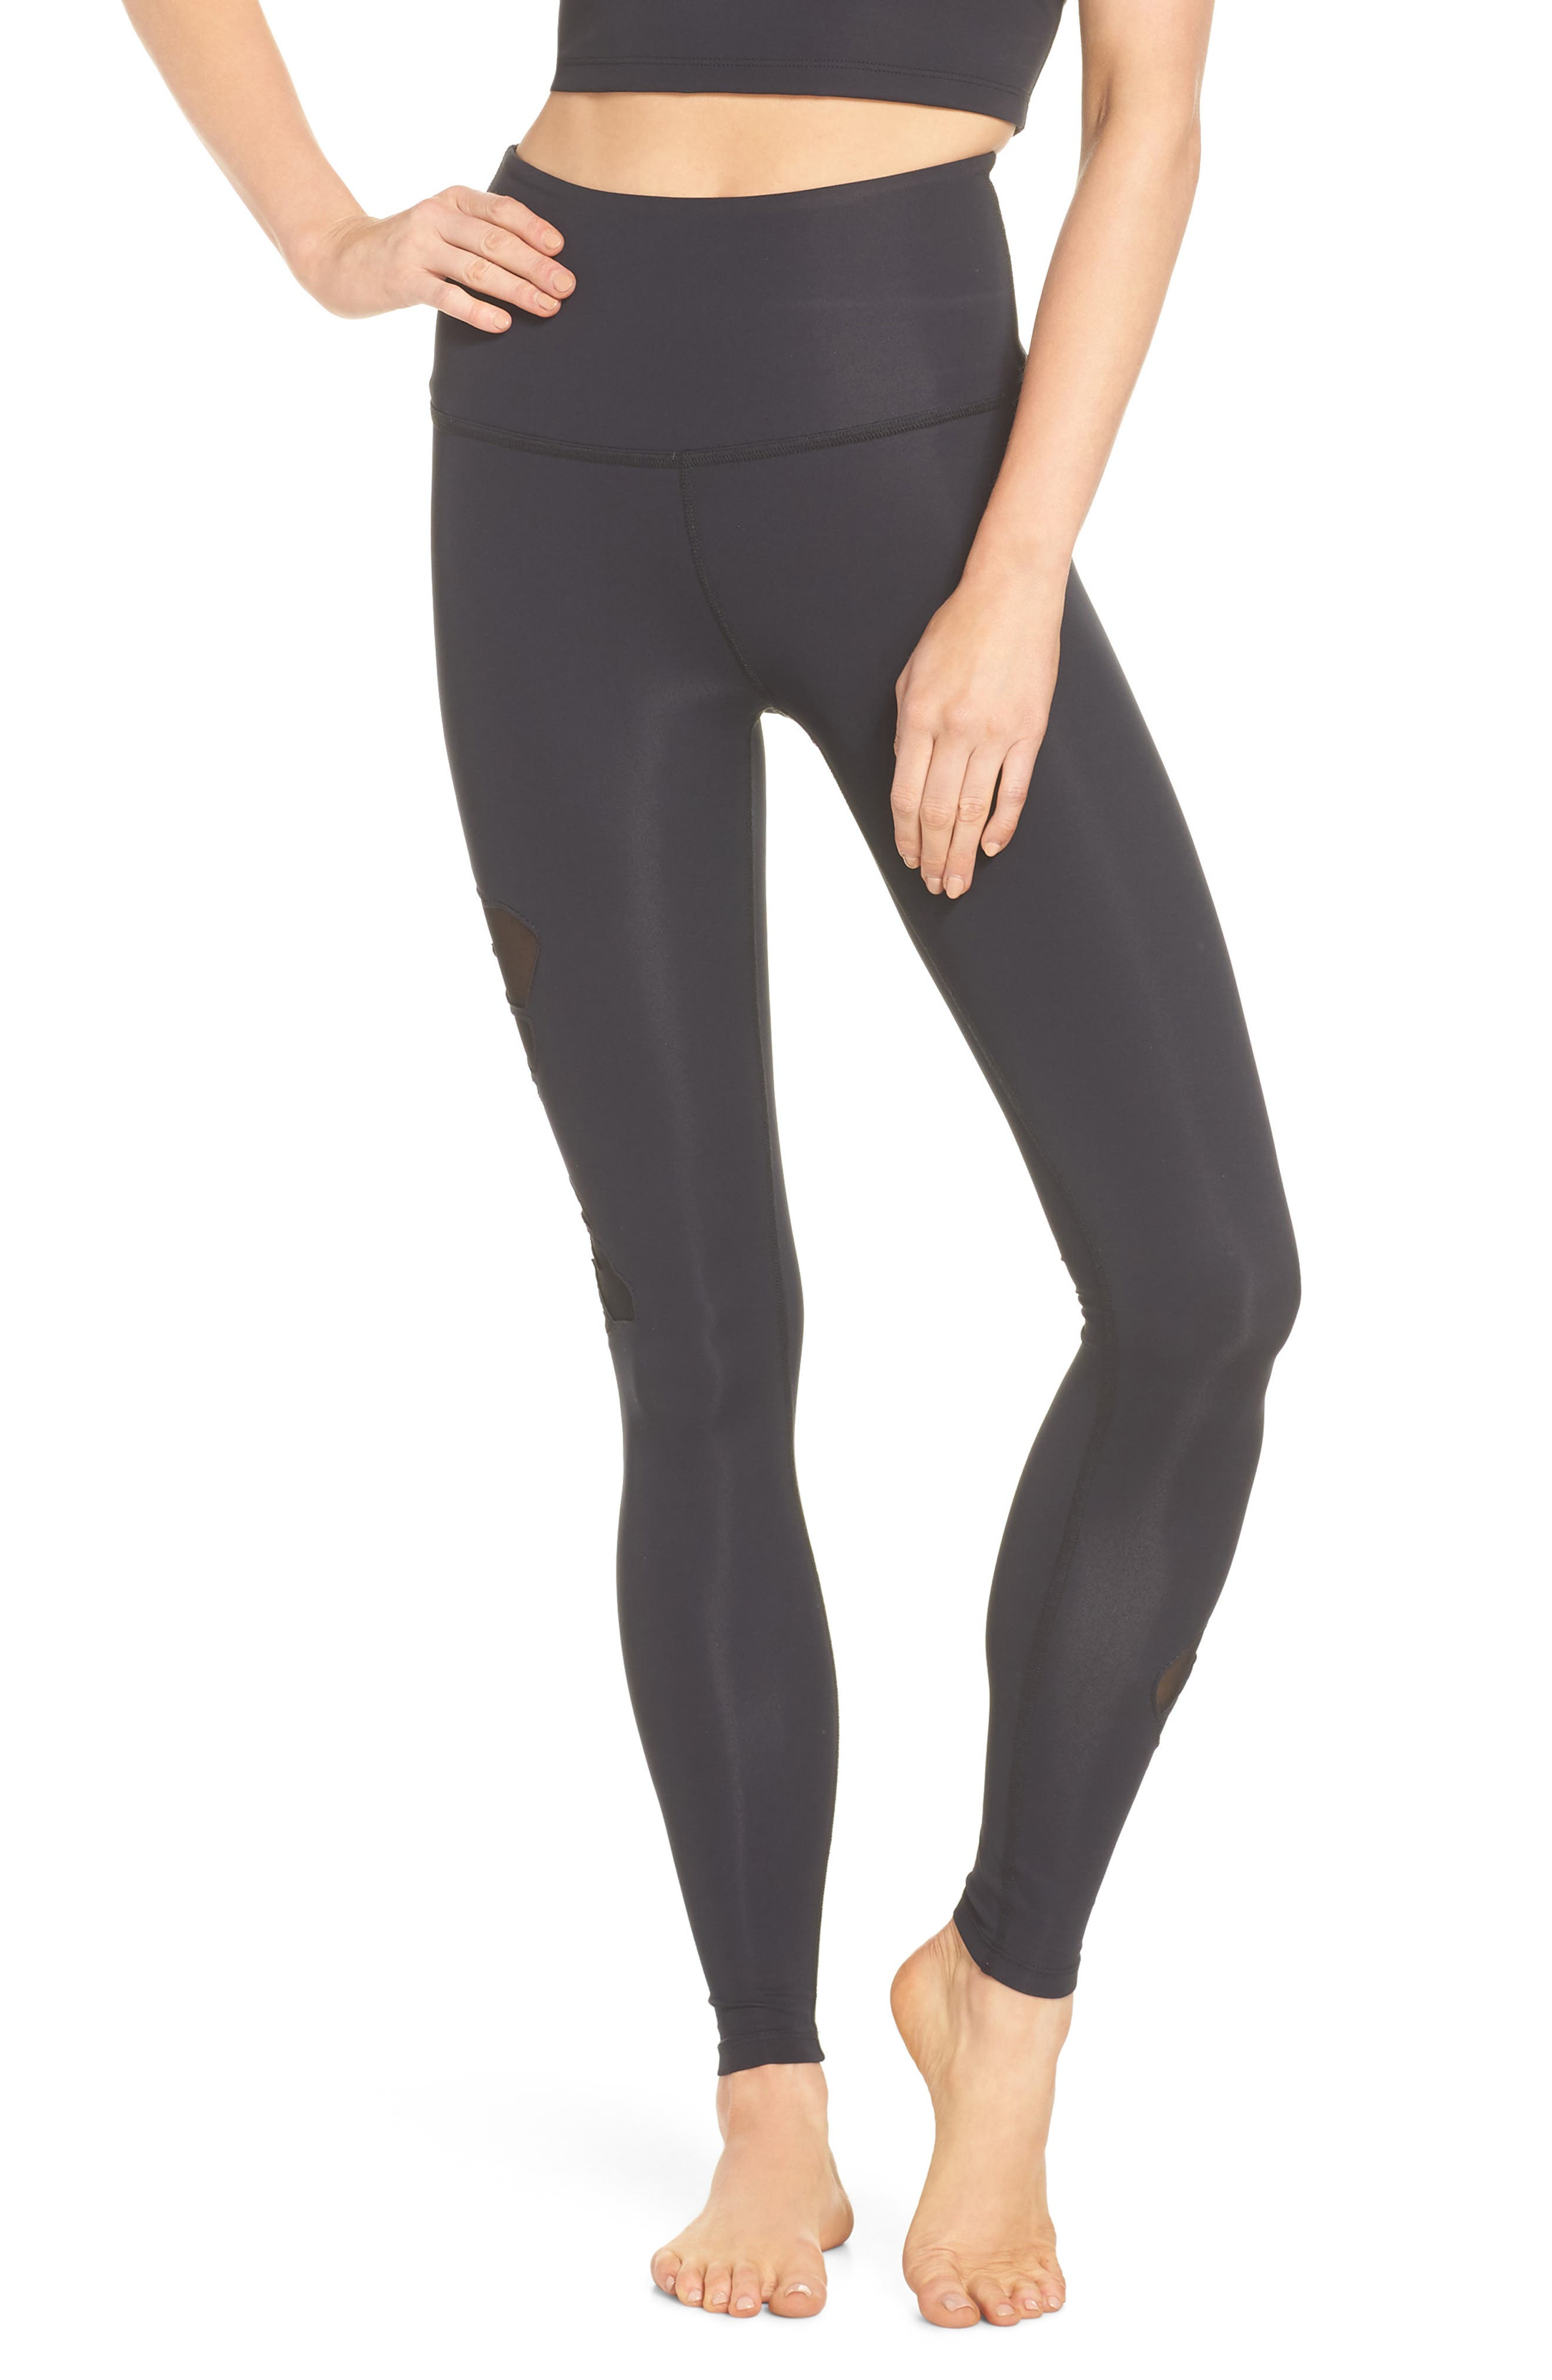 Take Leaf High Waist Leggings,                             Main thumbnail 1, color,                             Black